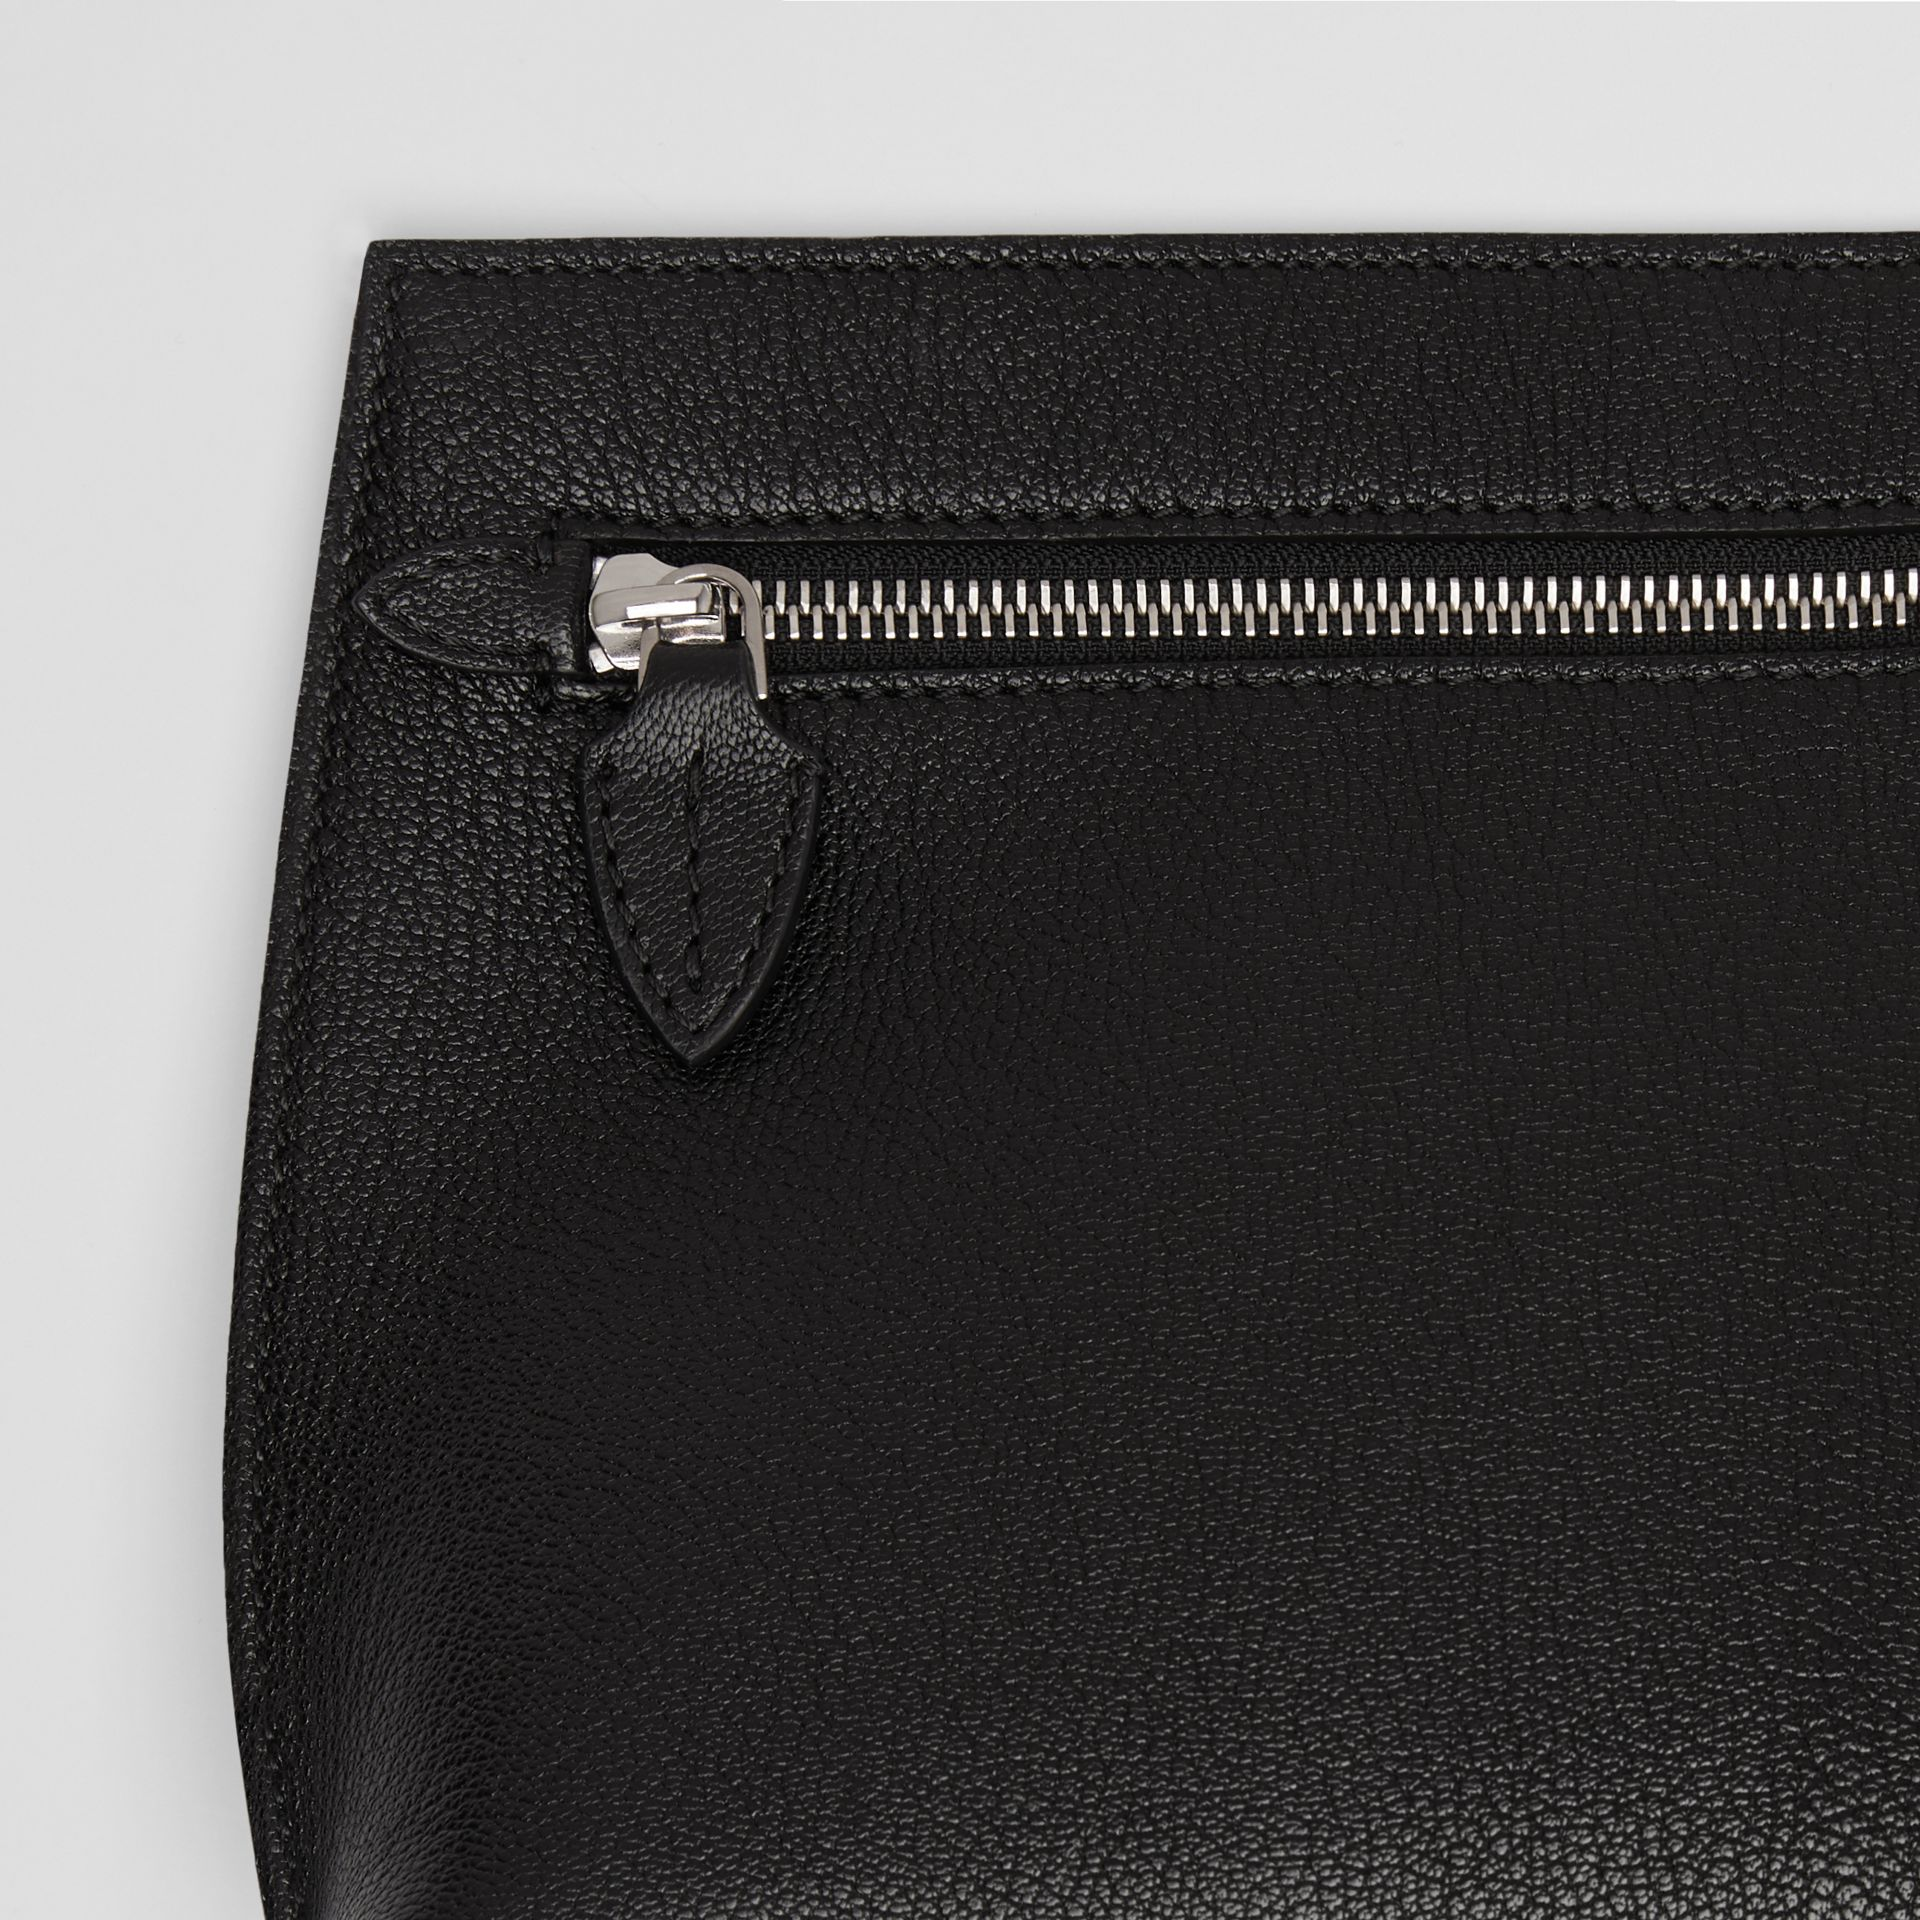 Grainy Leather Wristlet Clutch in Black - Women | Burberry - gallery image 1